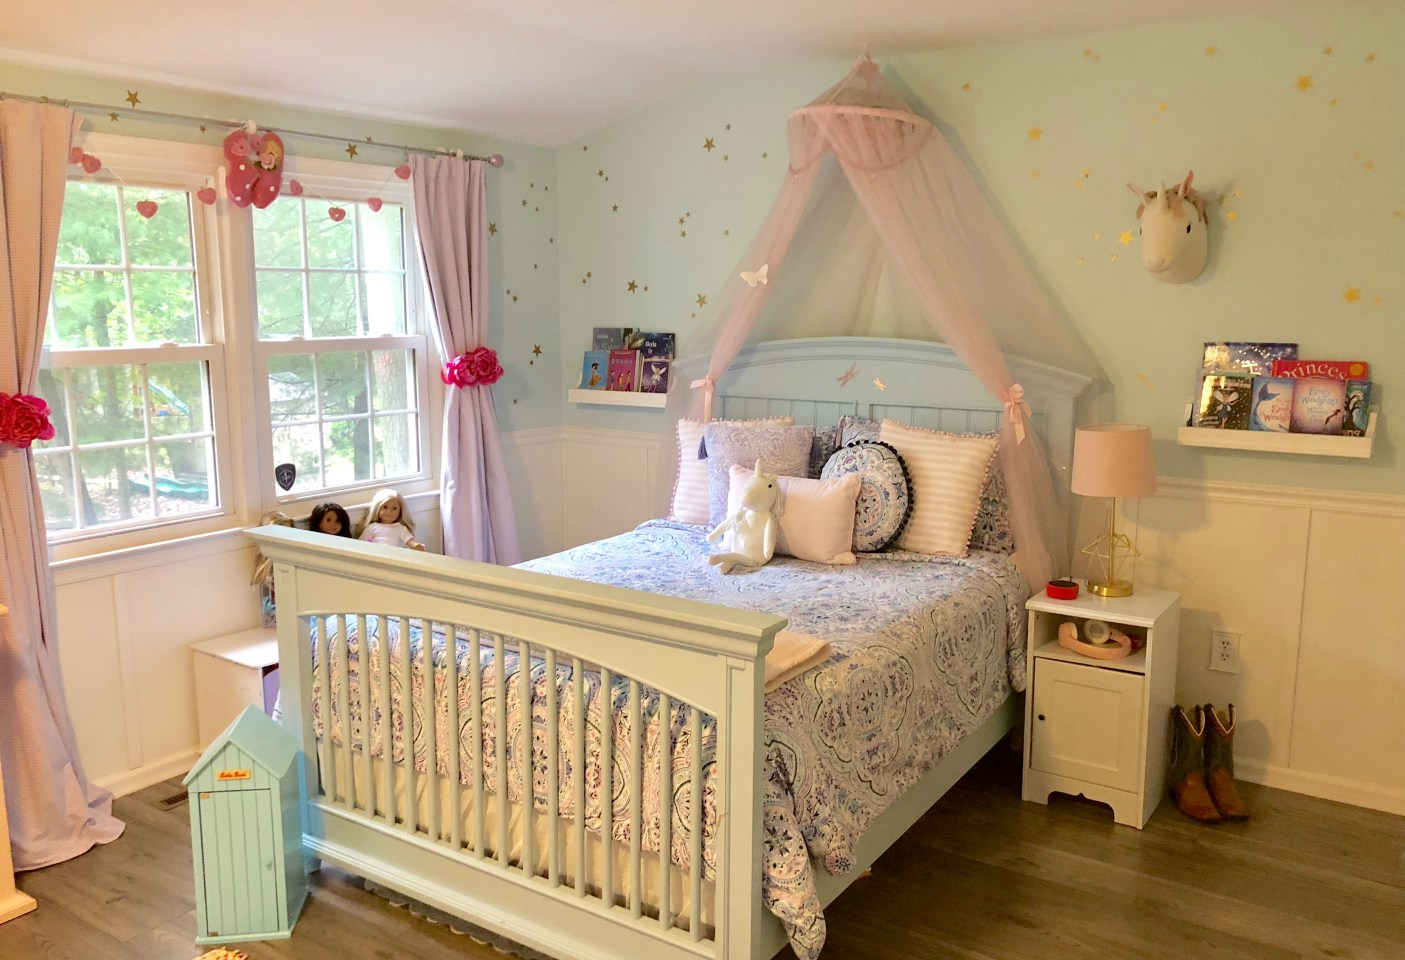 Pretty in Teal - Bedroom Renovation for Two Sisters - Eye in ...